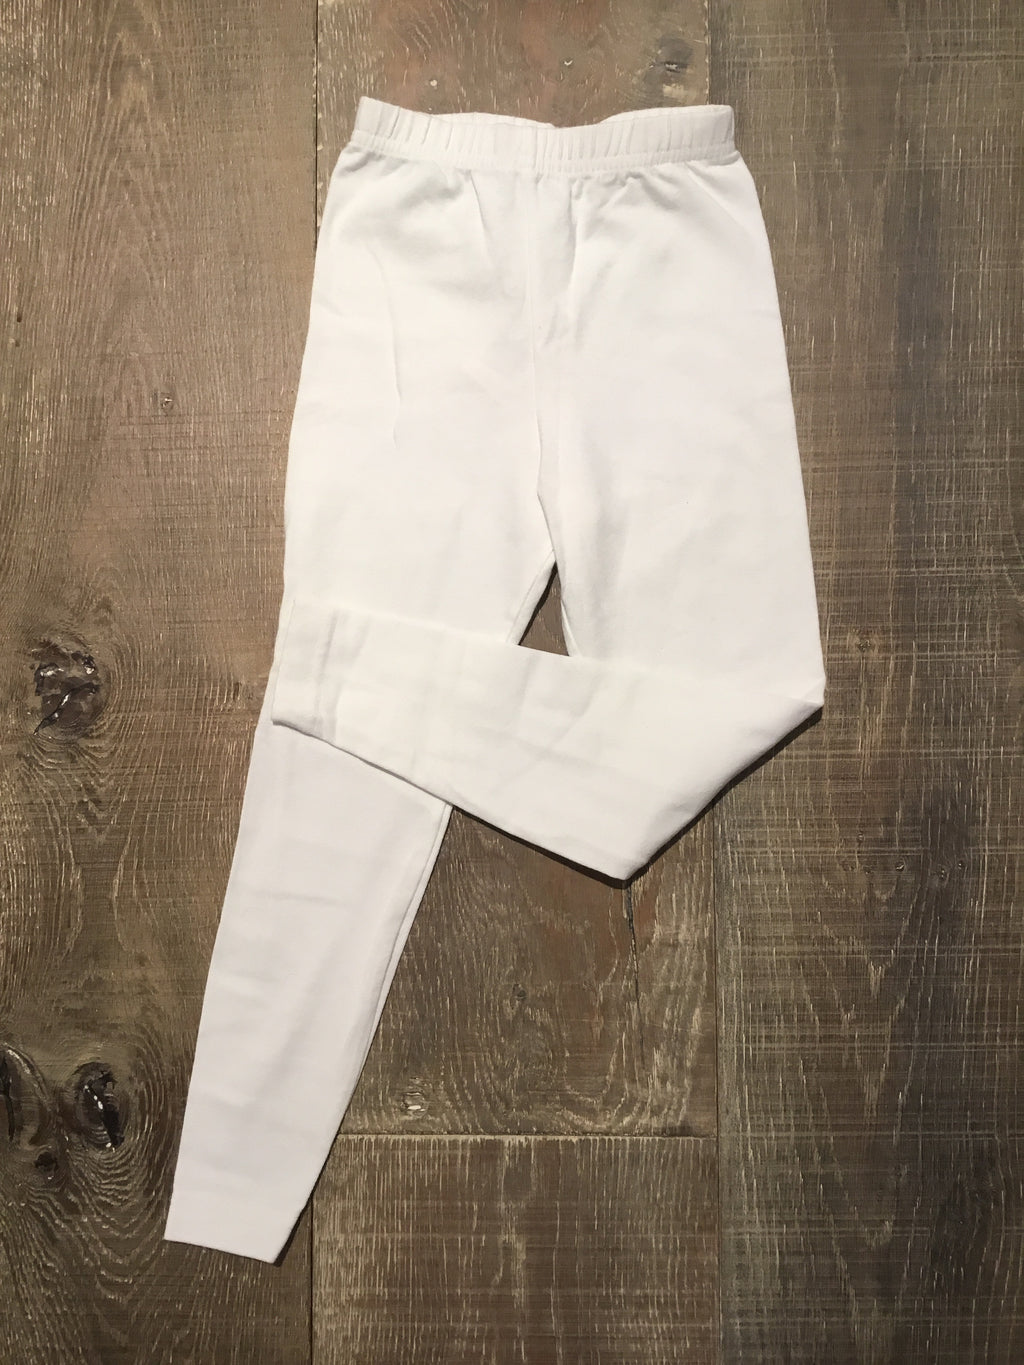 White Cotton/Lycra Leggings